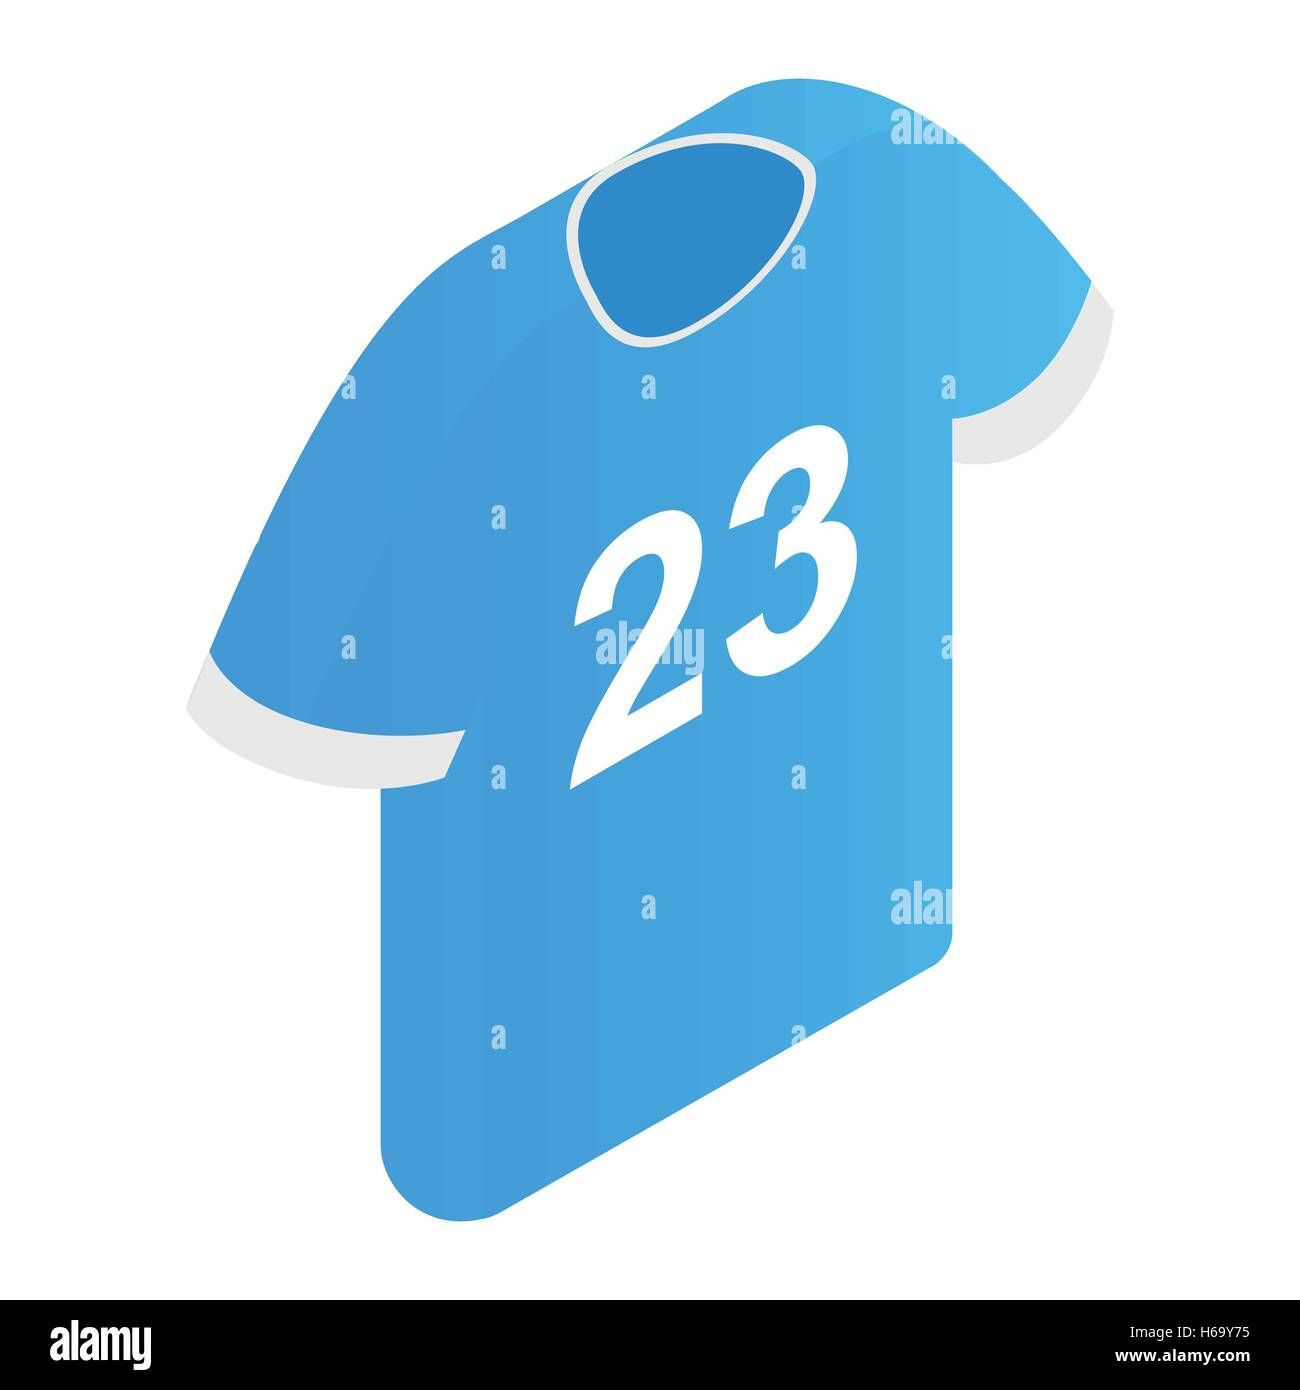 The sports t-shirt with the number 23 icon - Stock Vector